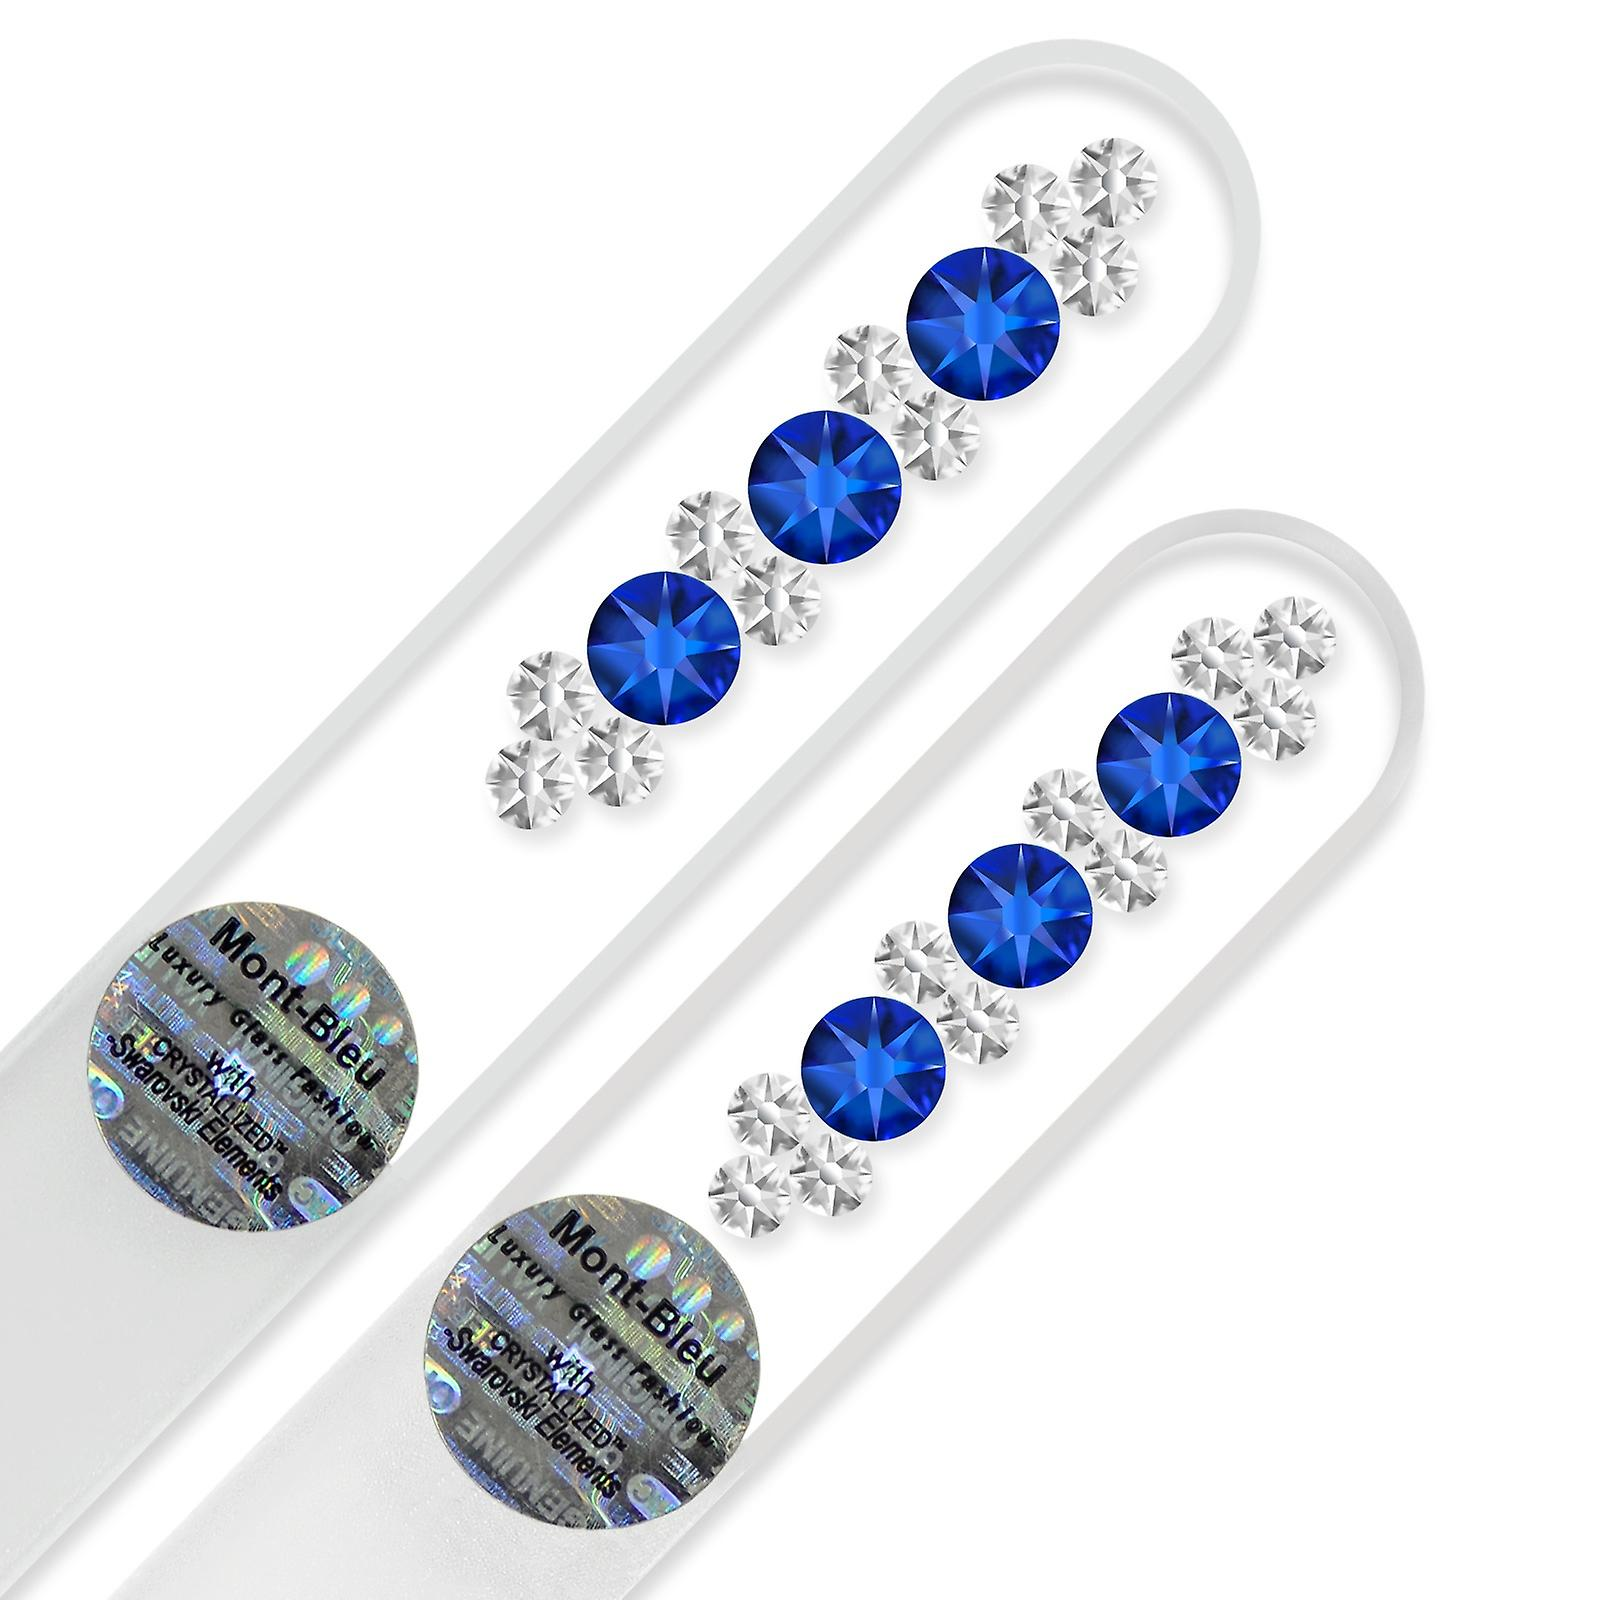 2-piece set with Hand Decorated Crystal Nail Files OR-MS